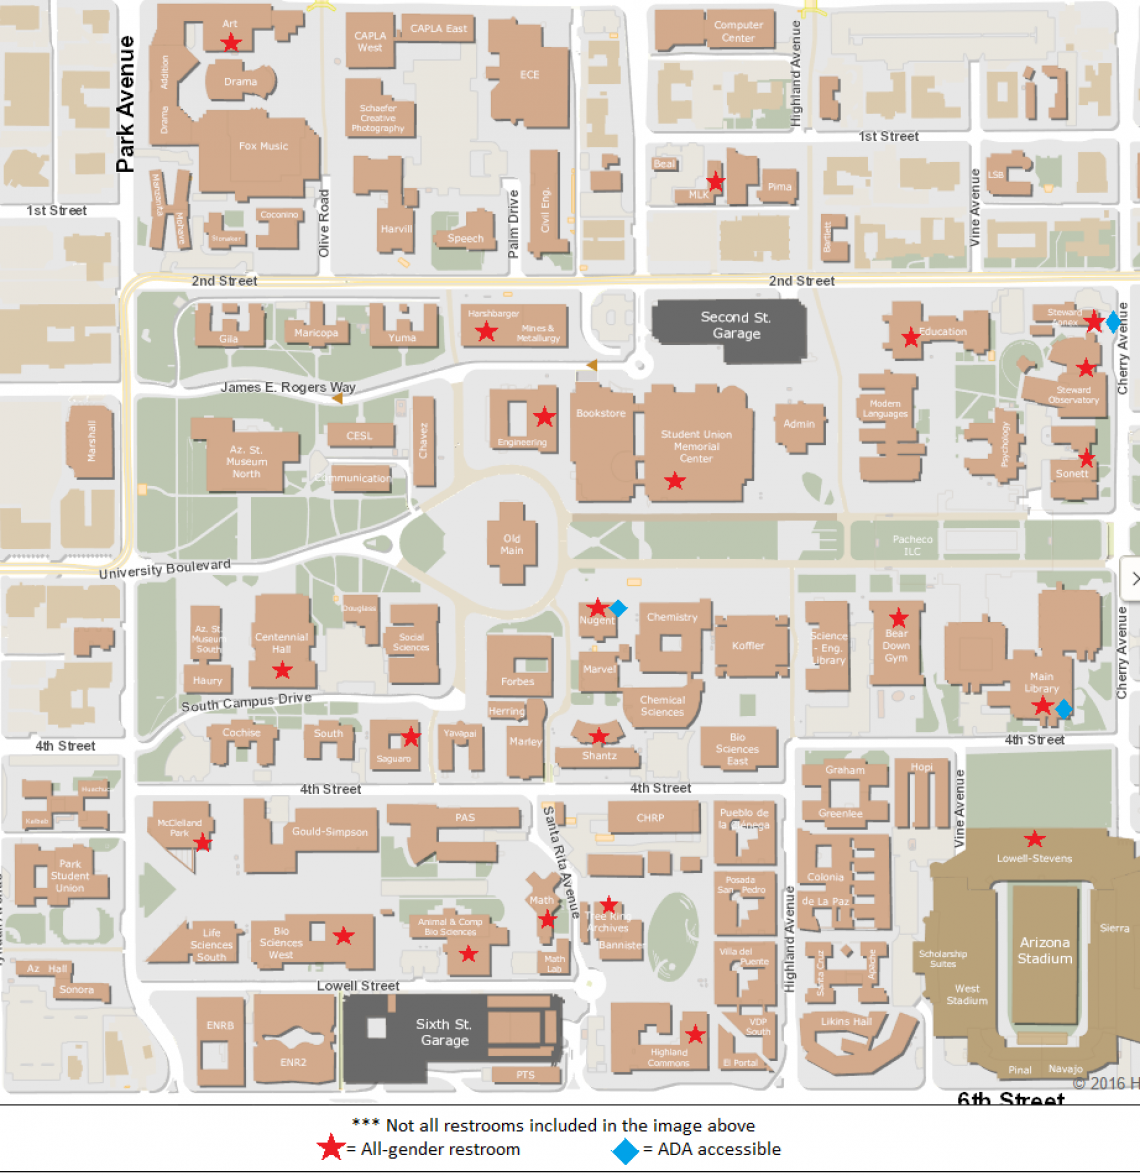 UArizona campus map showing all gender facilities